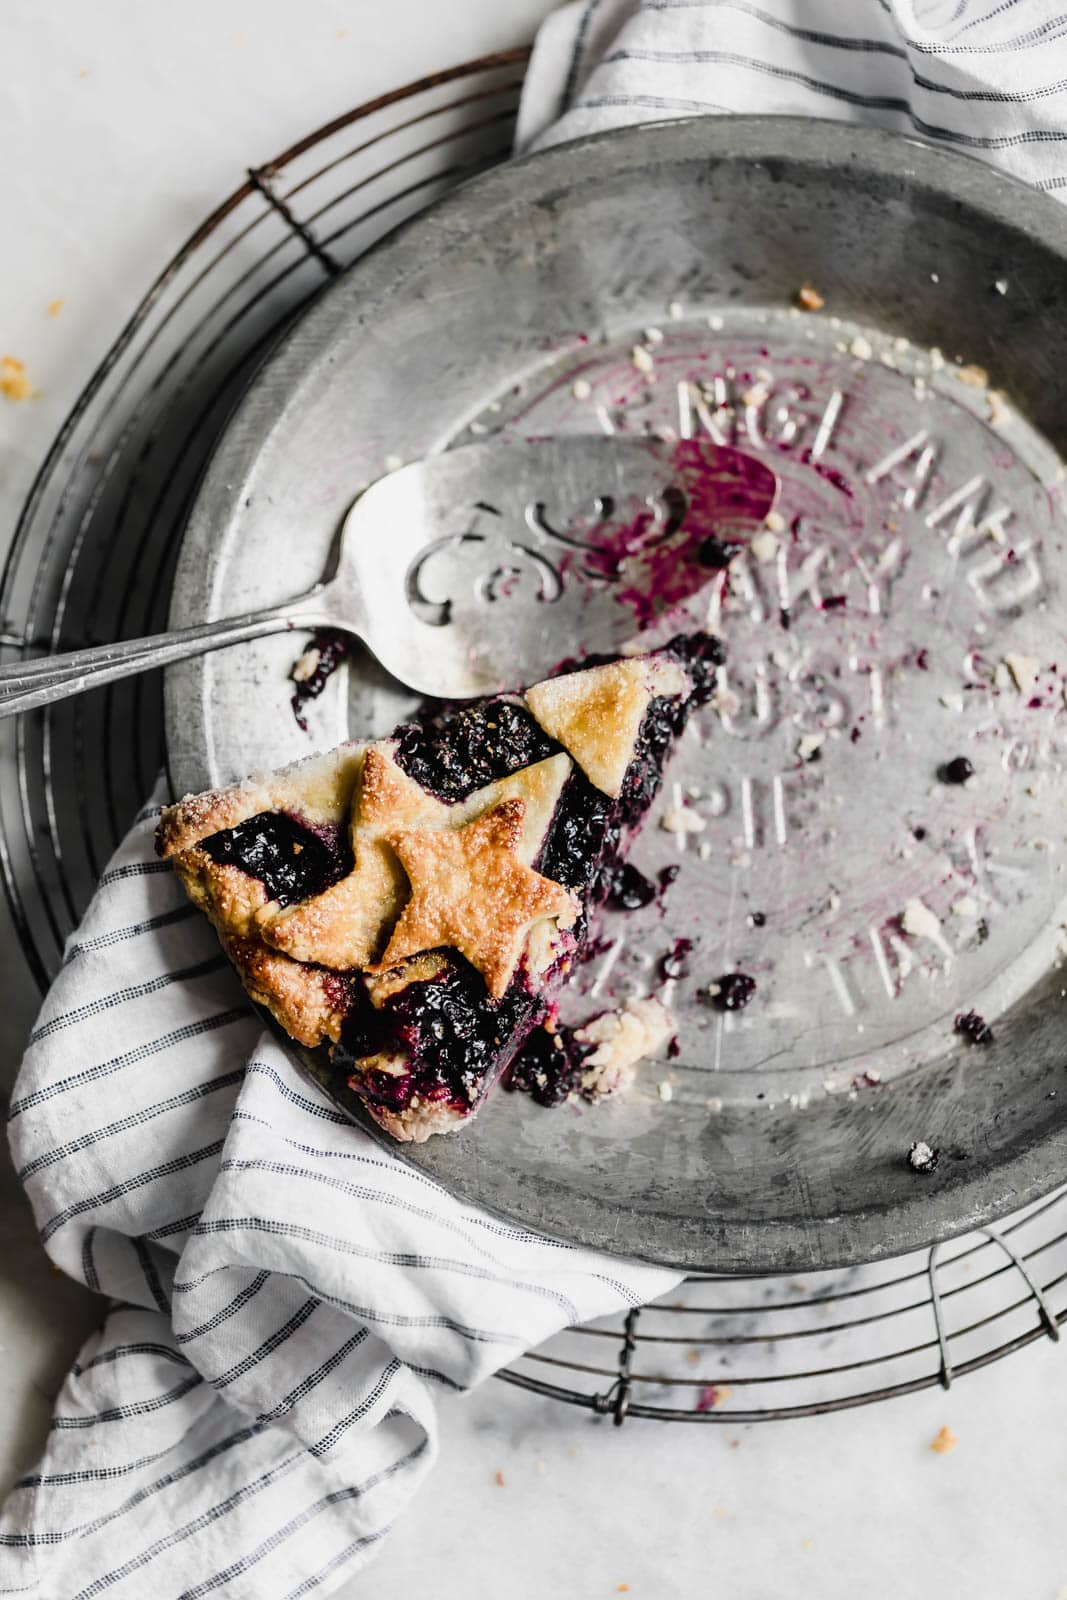 slice of blueberry pie in a pie pan